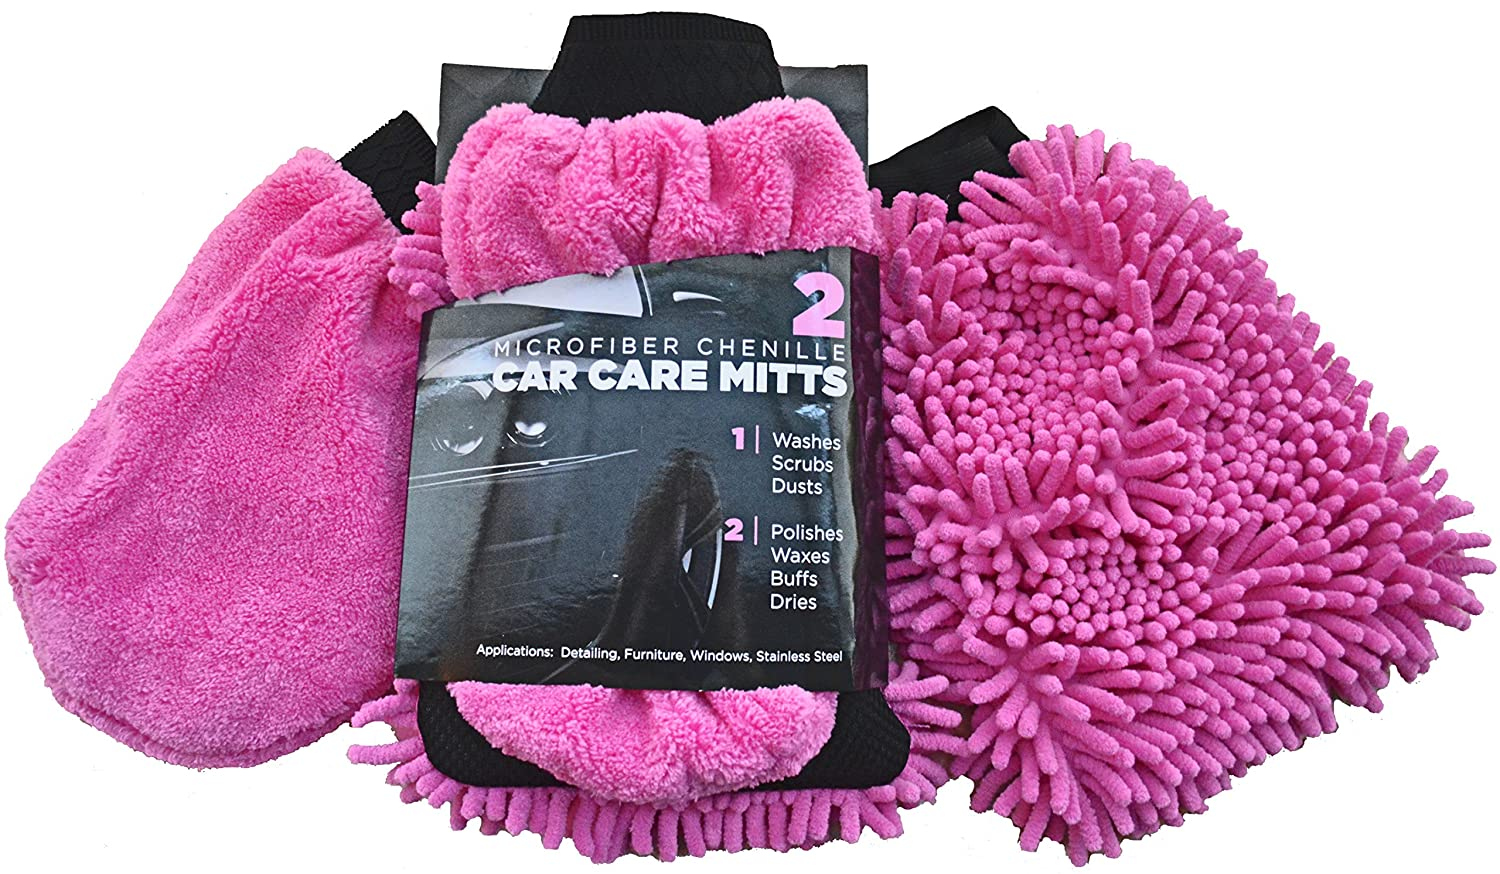 Car Wash Mitt & Duster (2 Blue Mitts) - Classic Car Accessories Gift Set - Dual-Sided Microfiber Washing Glove with Non-Scratch Scrubber Sponge on the Other Side - Bonus Dust & Dry Mitt Included Exceptional Home 6247271